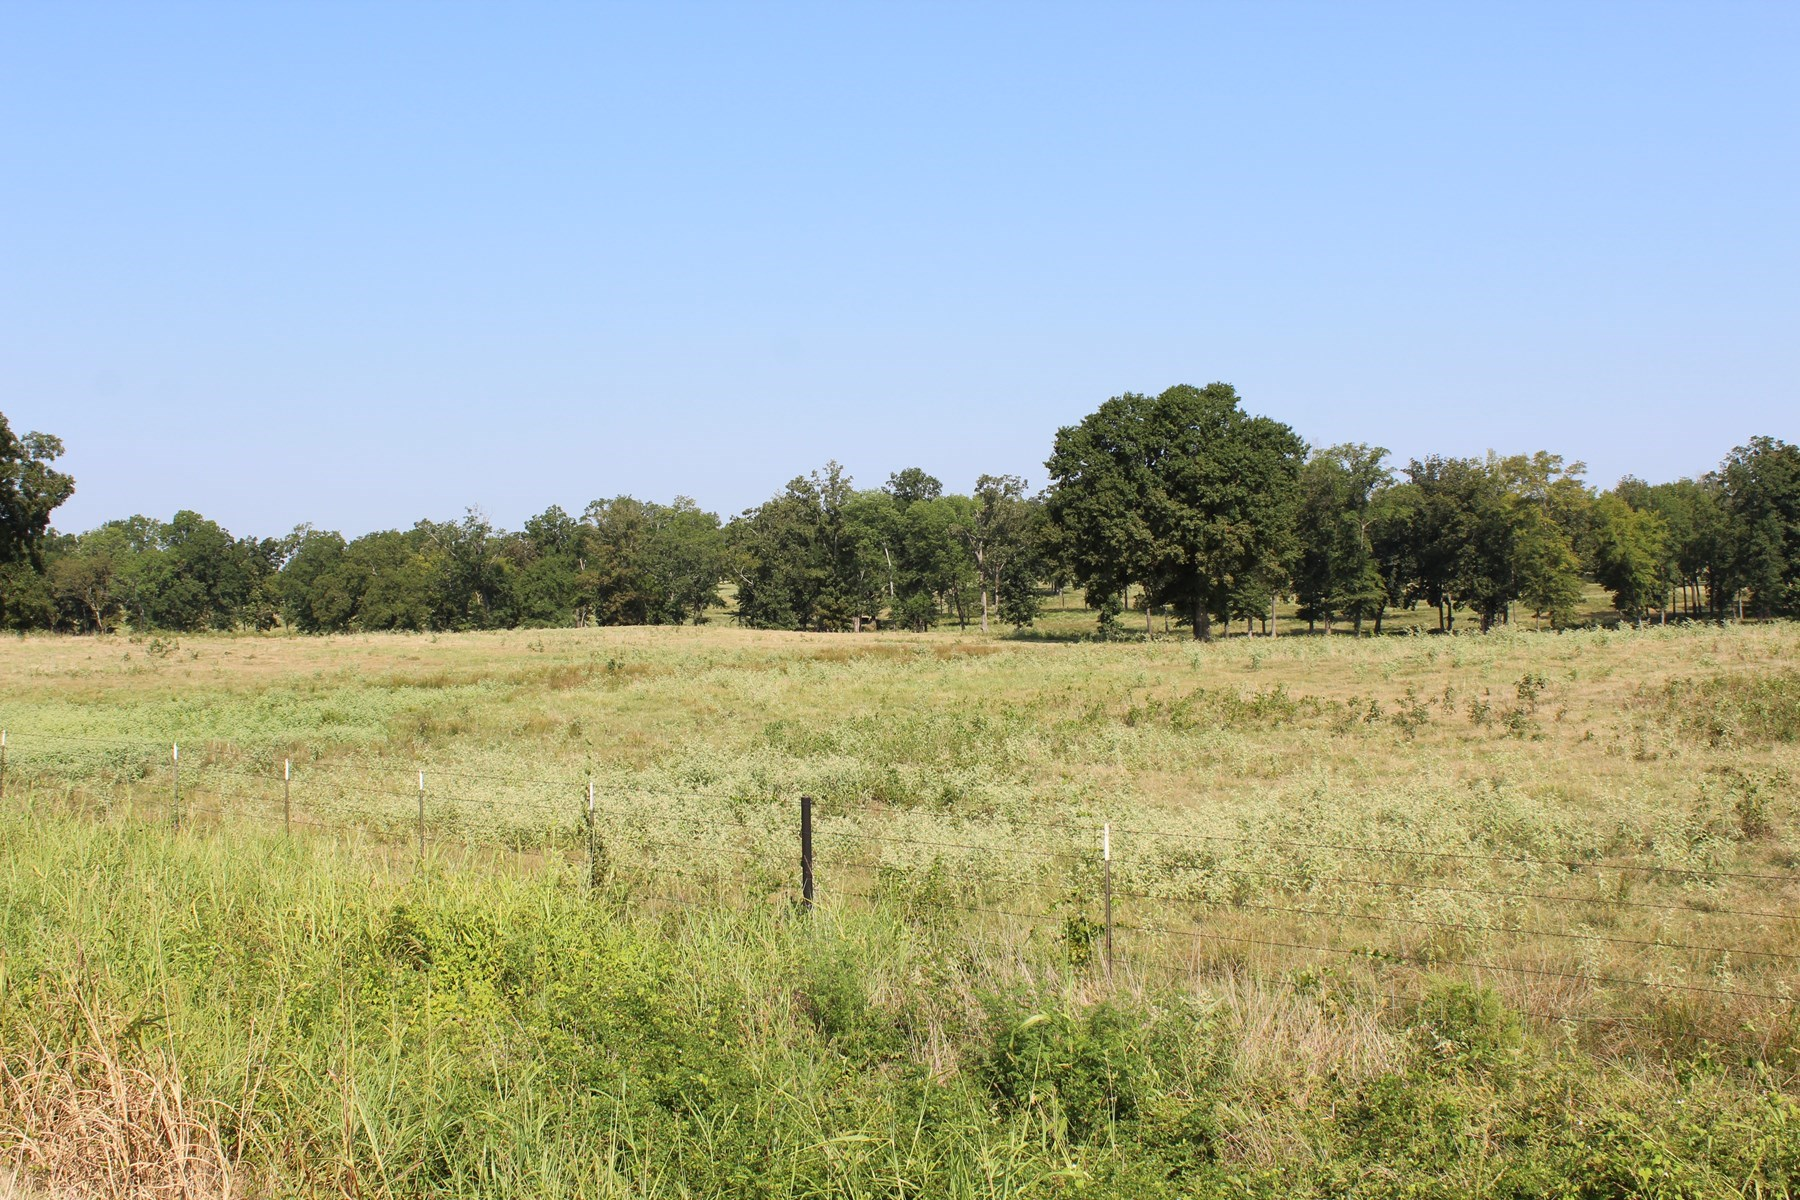 Country Farm & Ranch Land For Sale Idabel Oklahoma